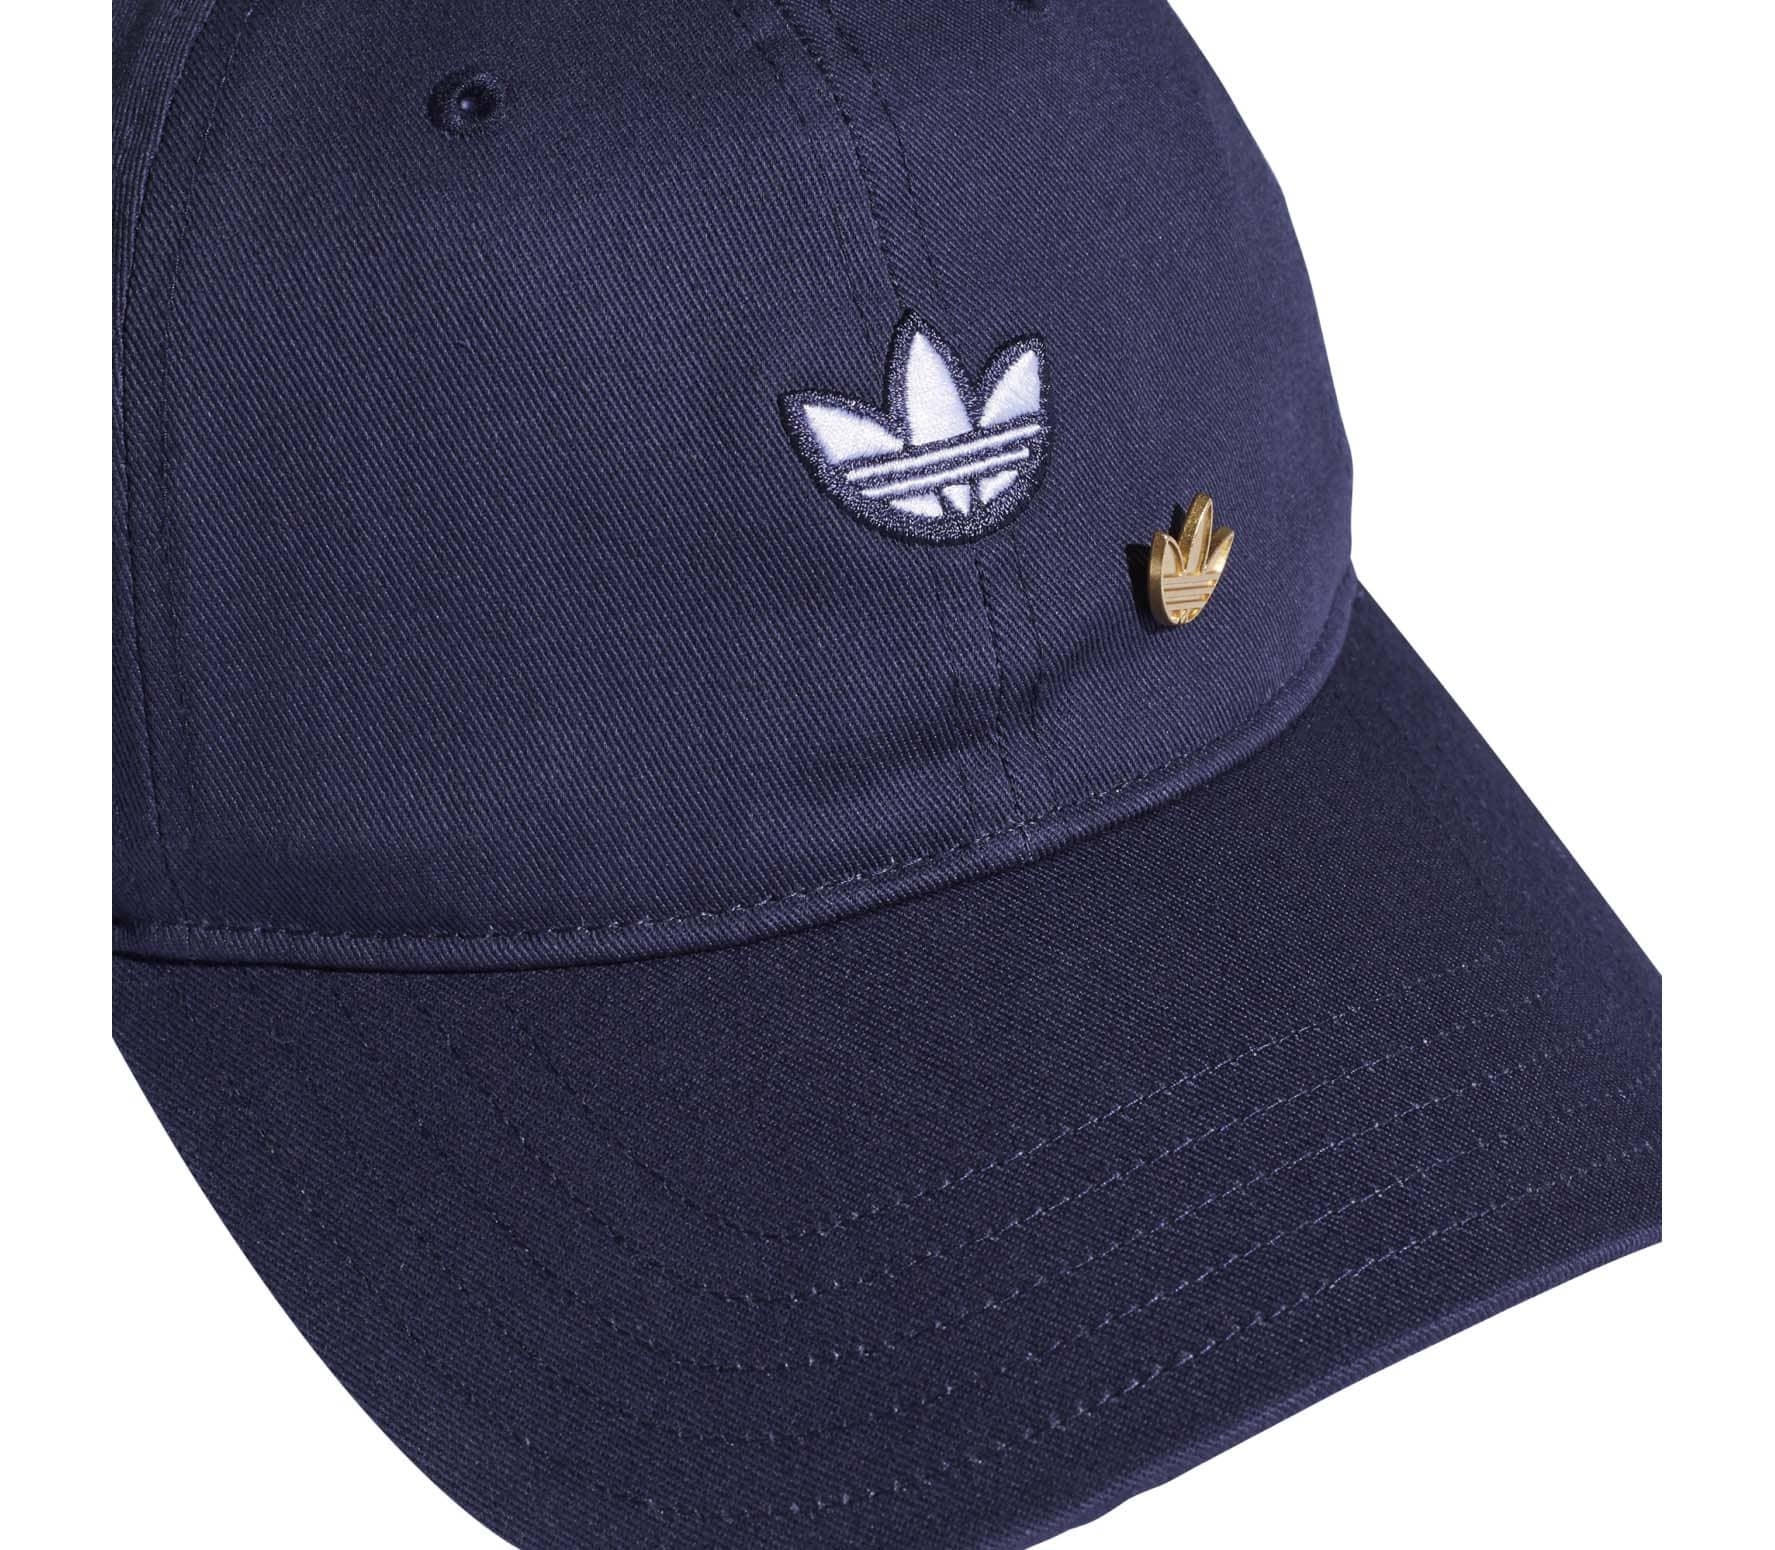 7957e8145 adidas Originals Samstag Dad Unisex Cap blue